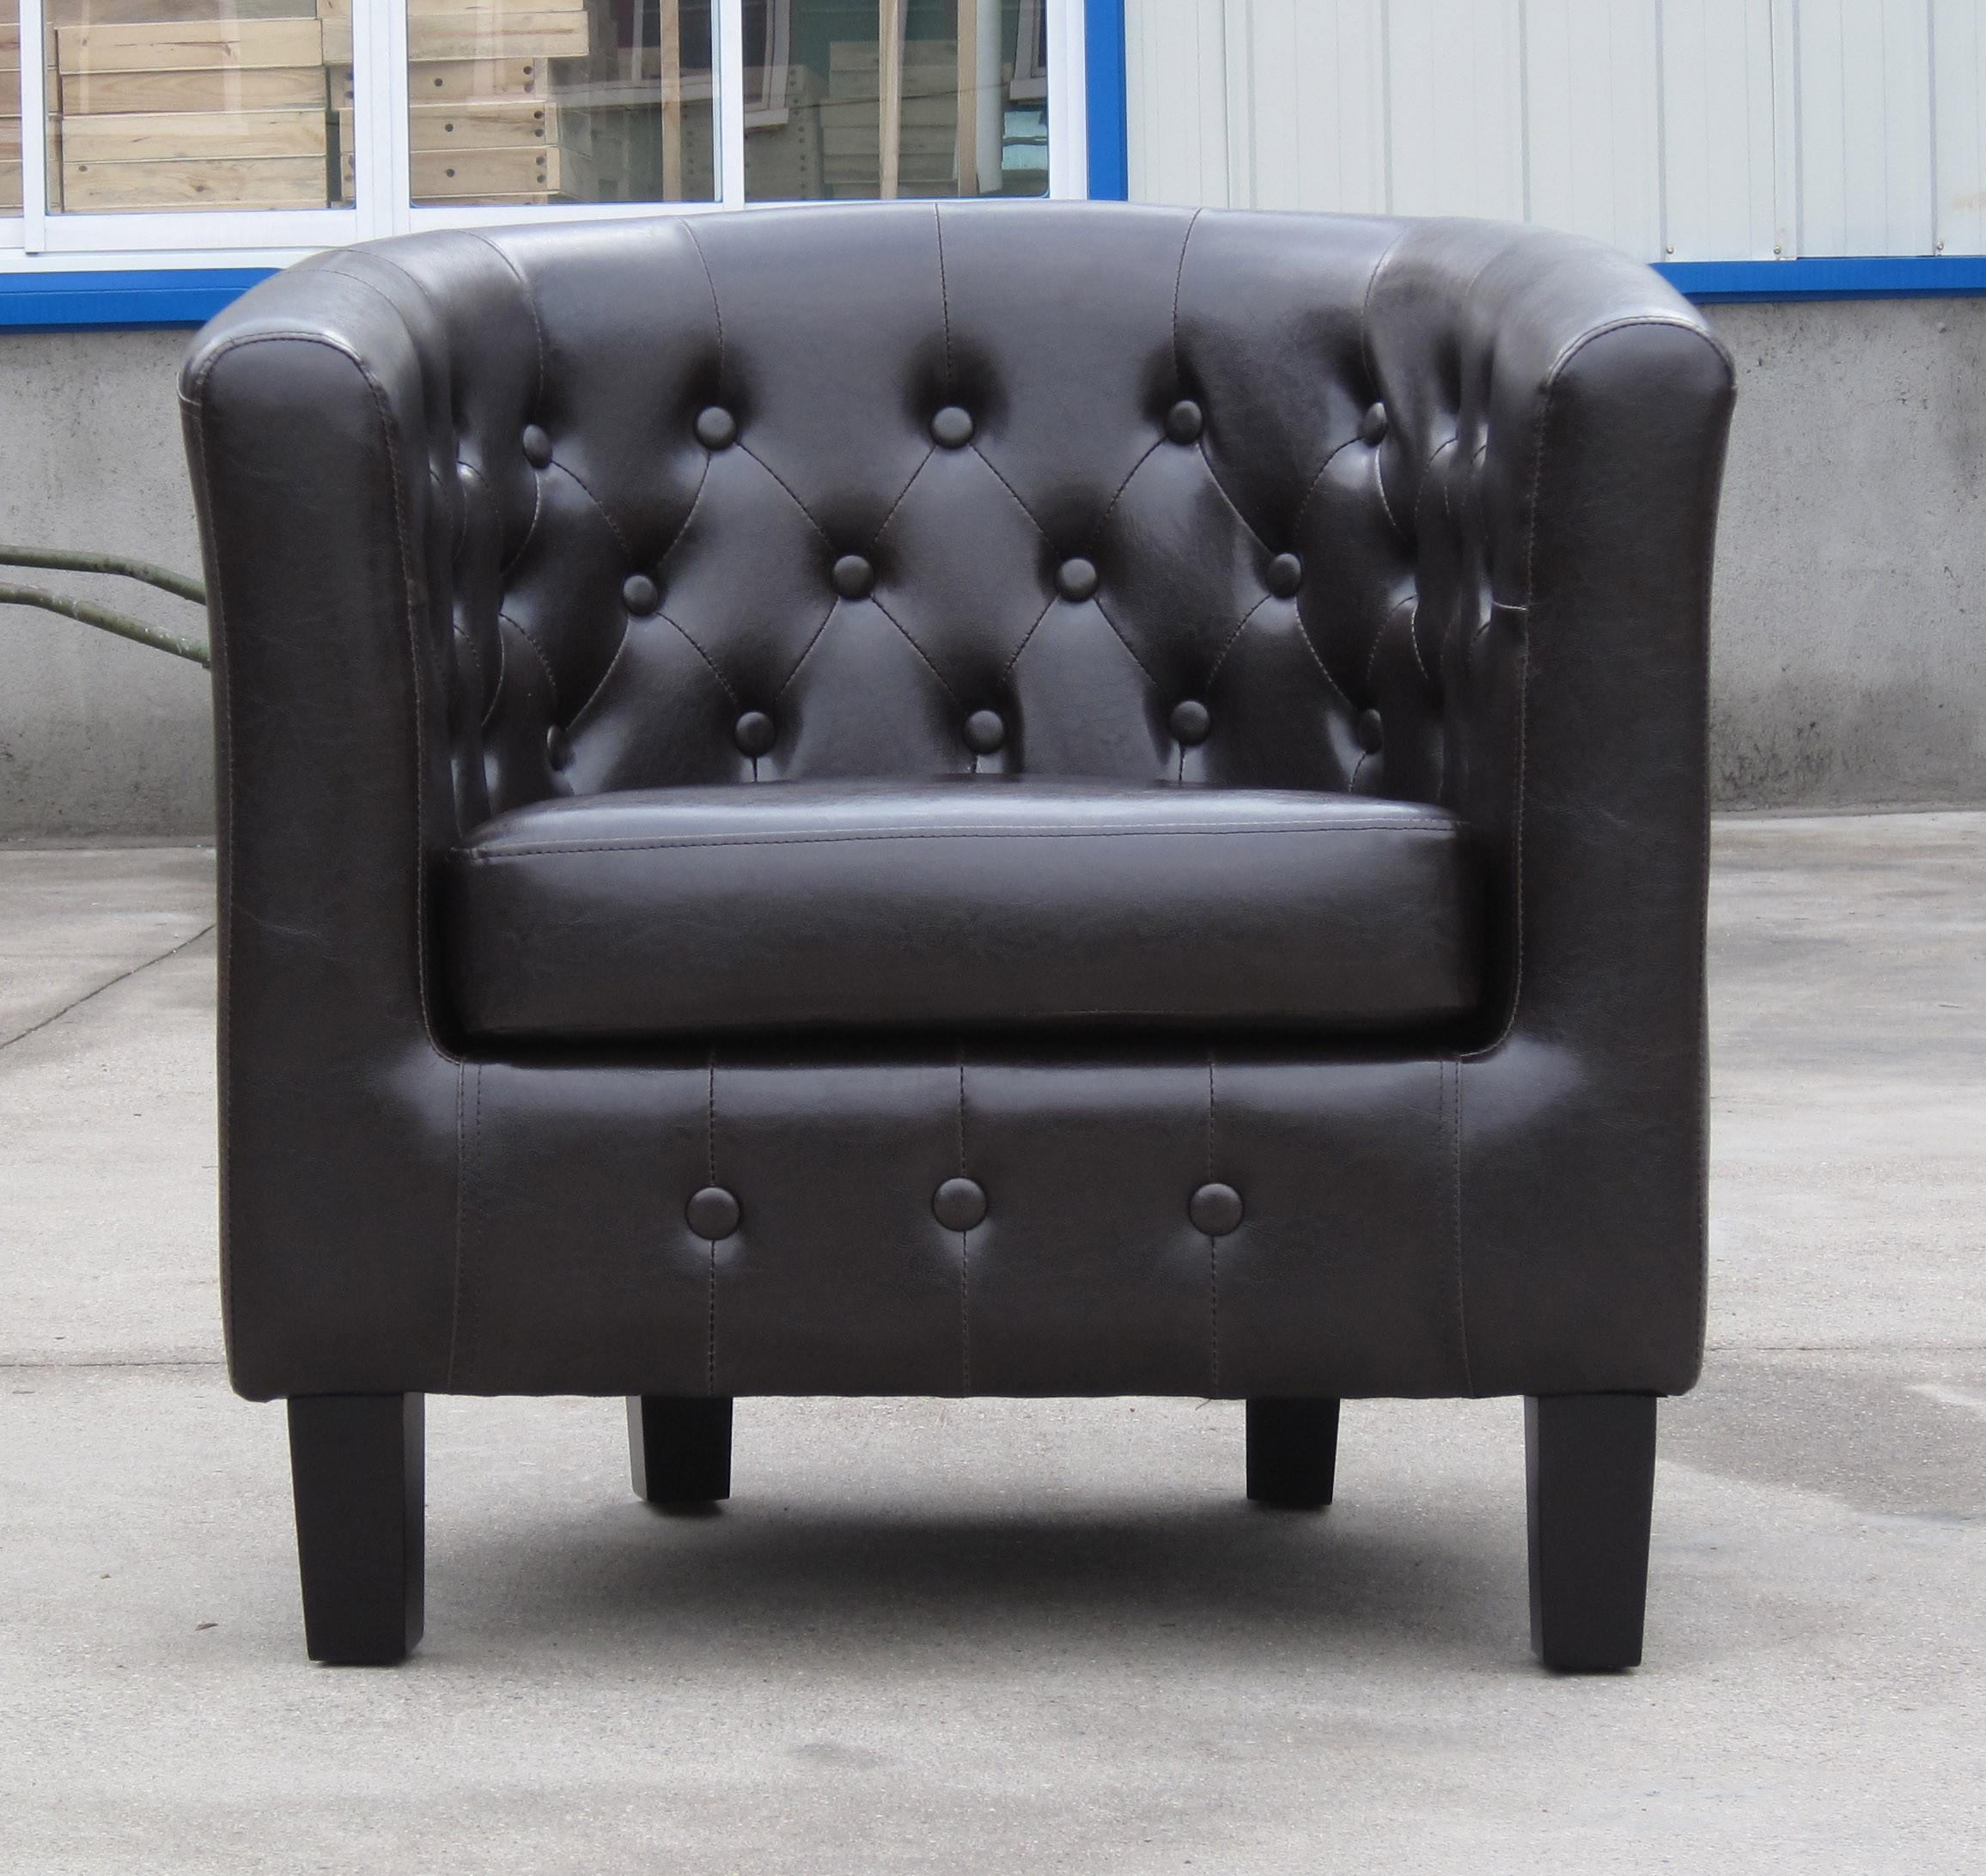 small sofas and armchairs french connection coast sofa review 20 best ideas chairs